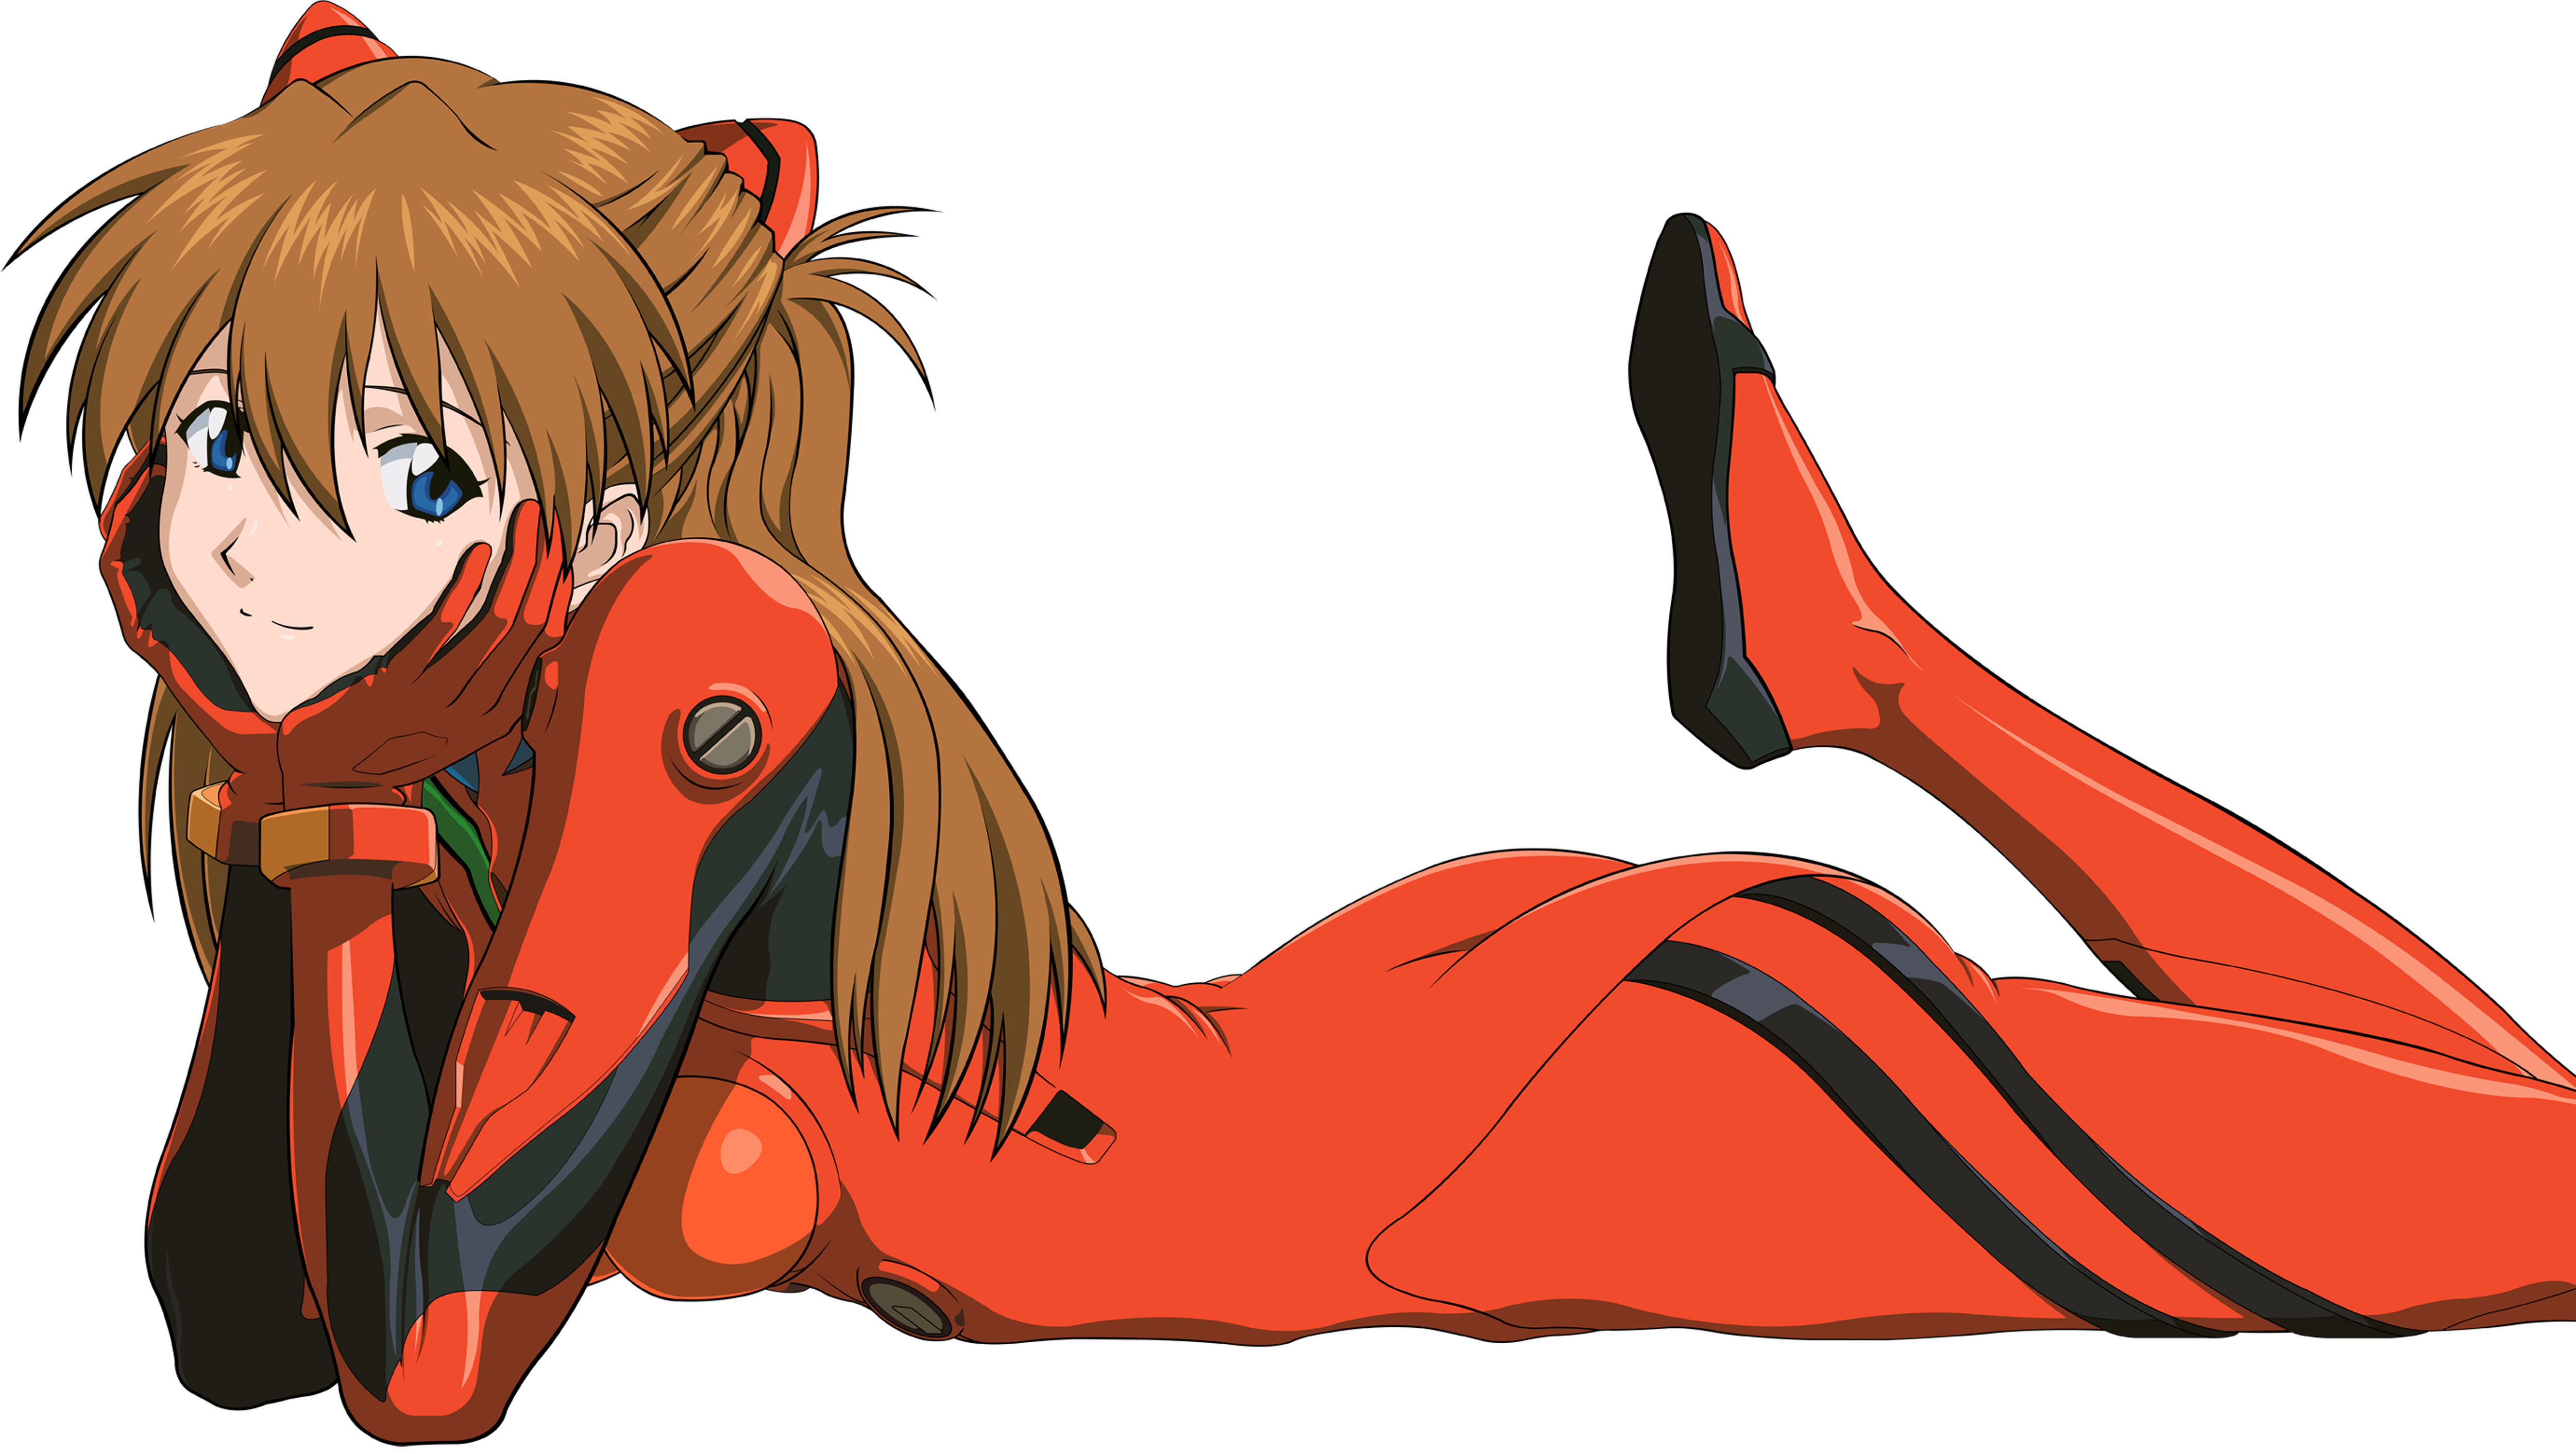 image library stock Thumbed cause Asuka is best grill